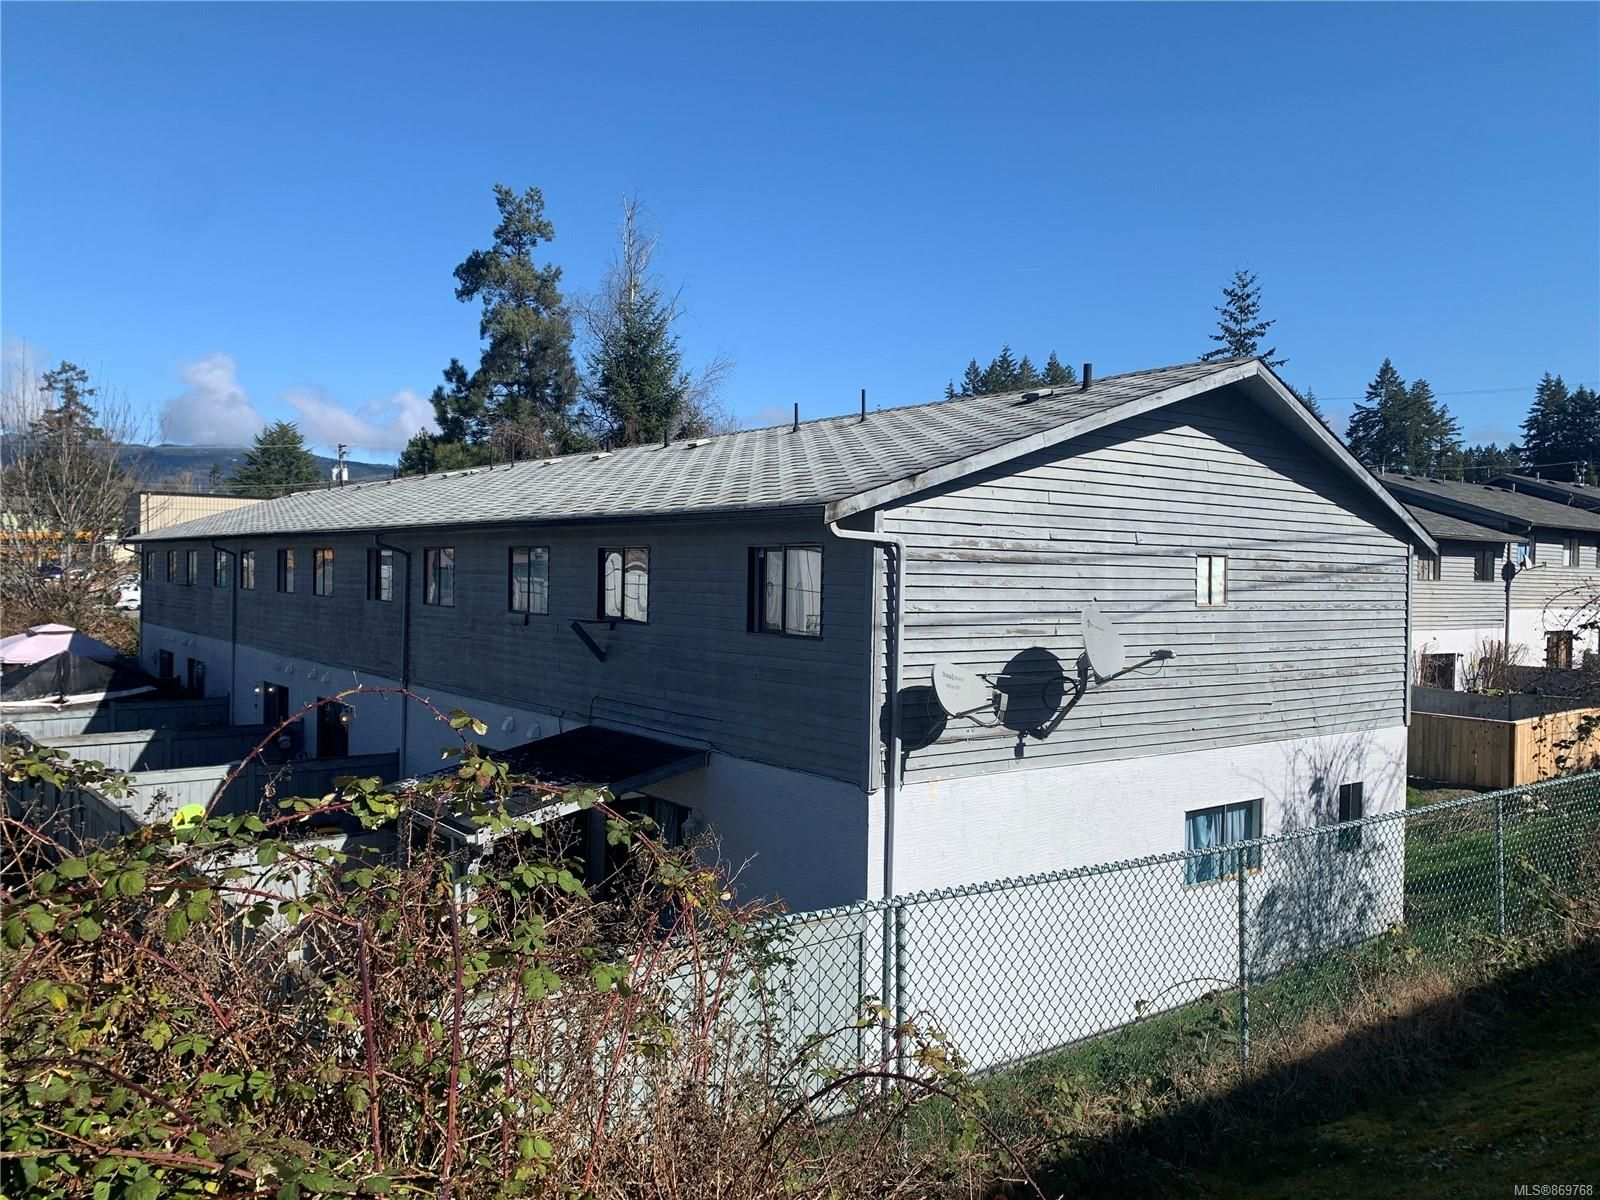 Main Photo: 4214 8th Ave in : PA Port Alberni Multi Family for sale (Port Alberni)  : MLS®# 869768